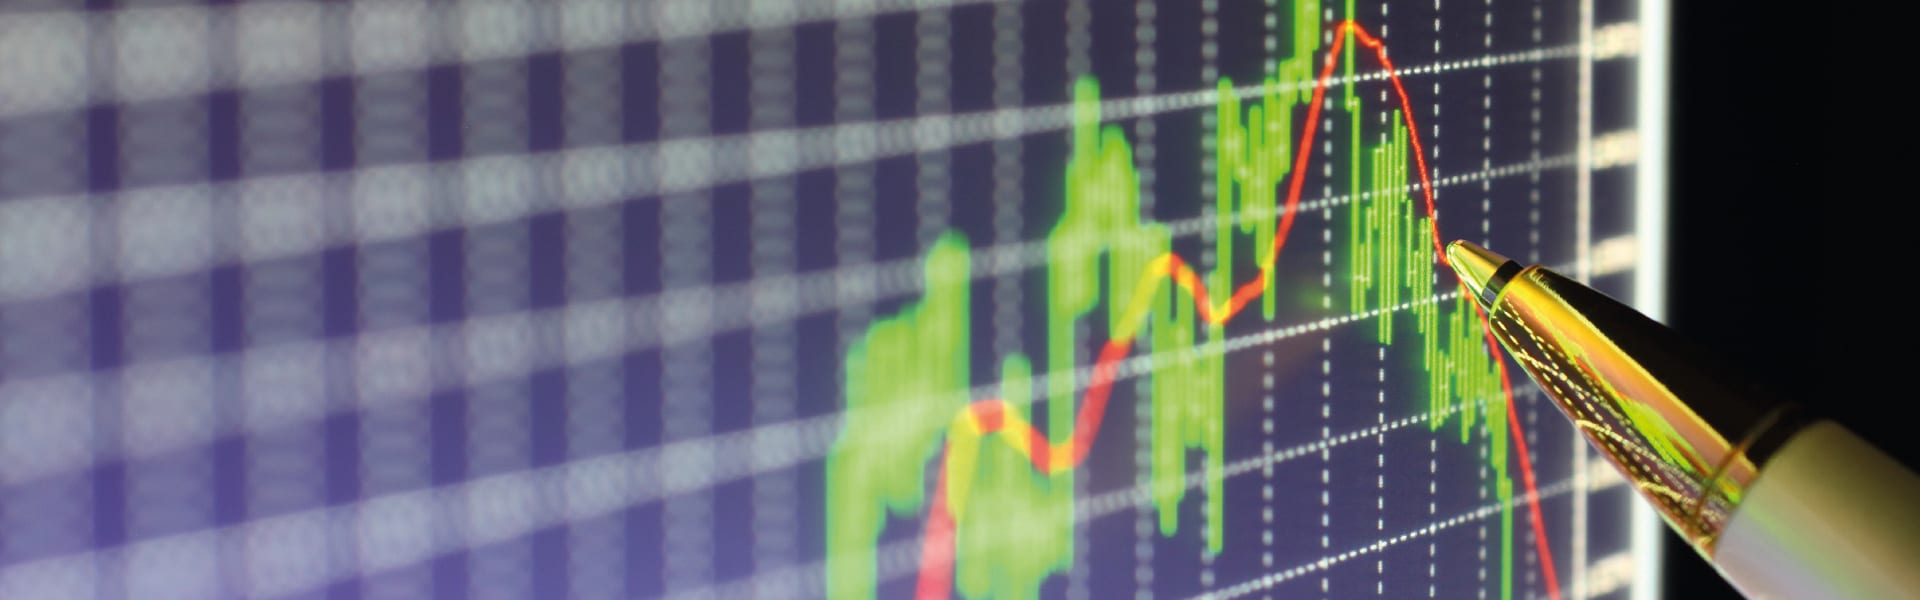 Pure Planet ceases trading - Utility Week